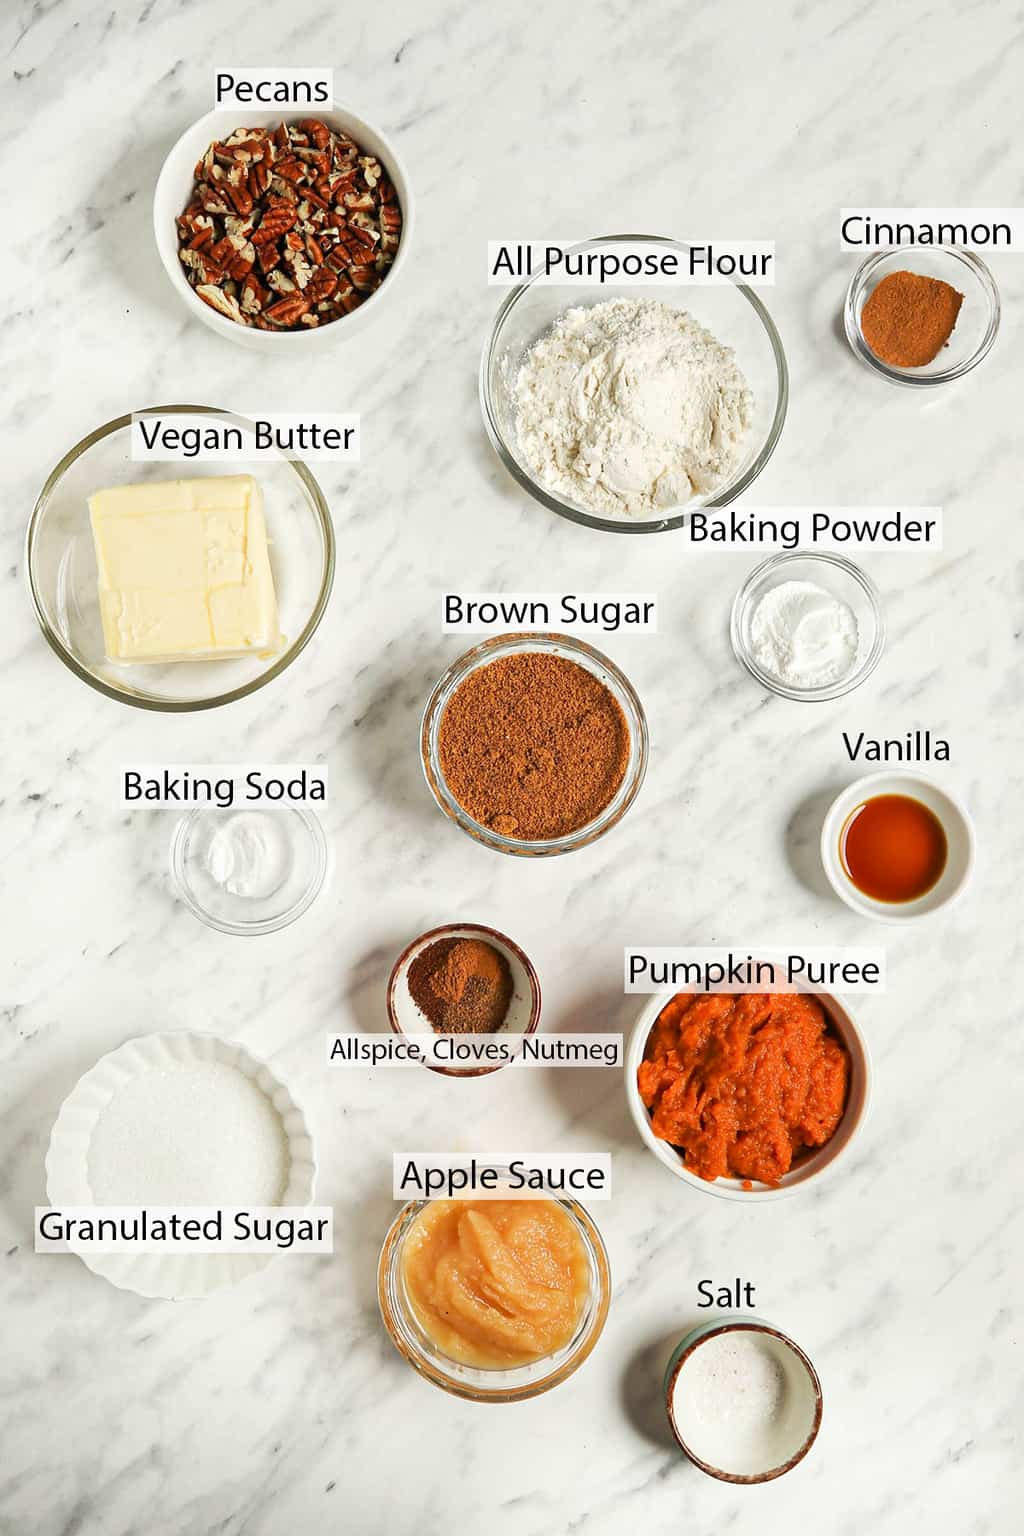 Ingredients for coffee cake measured out and placed on a marble countertop